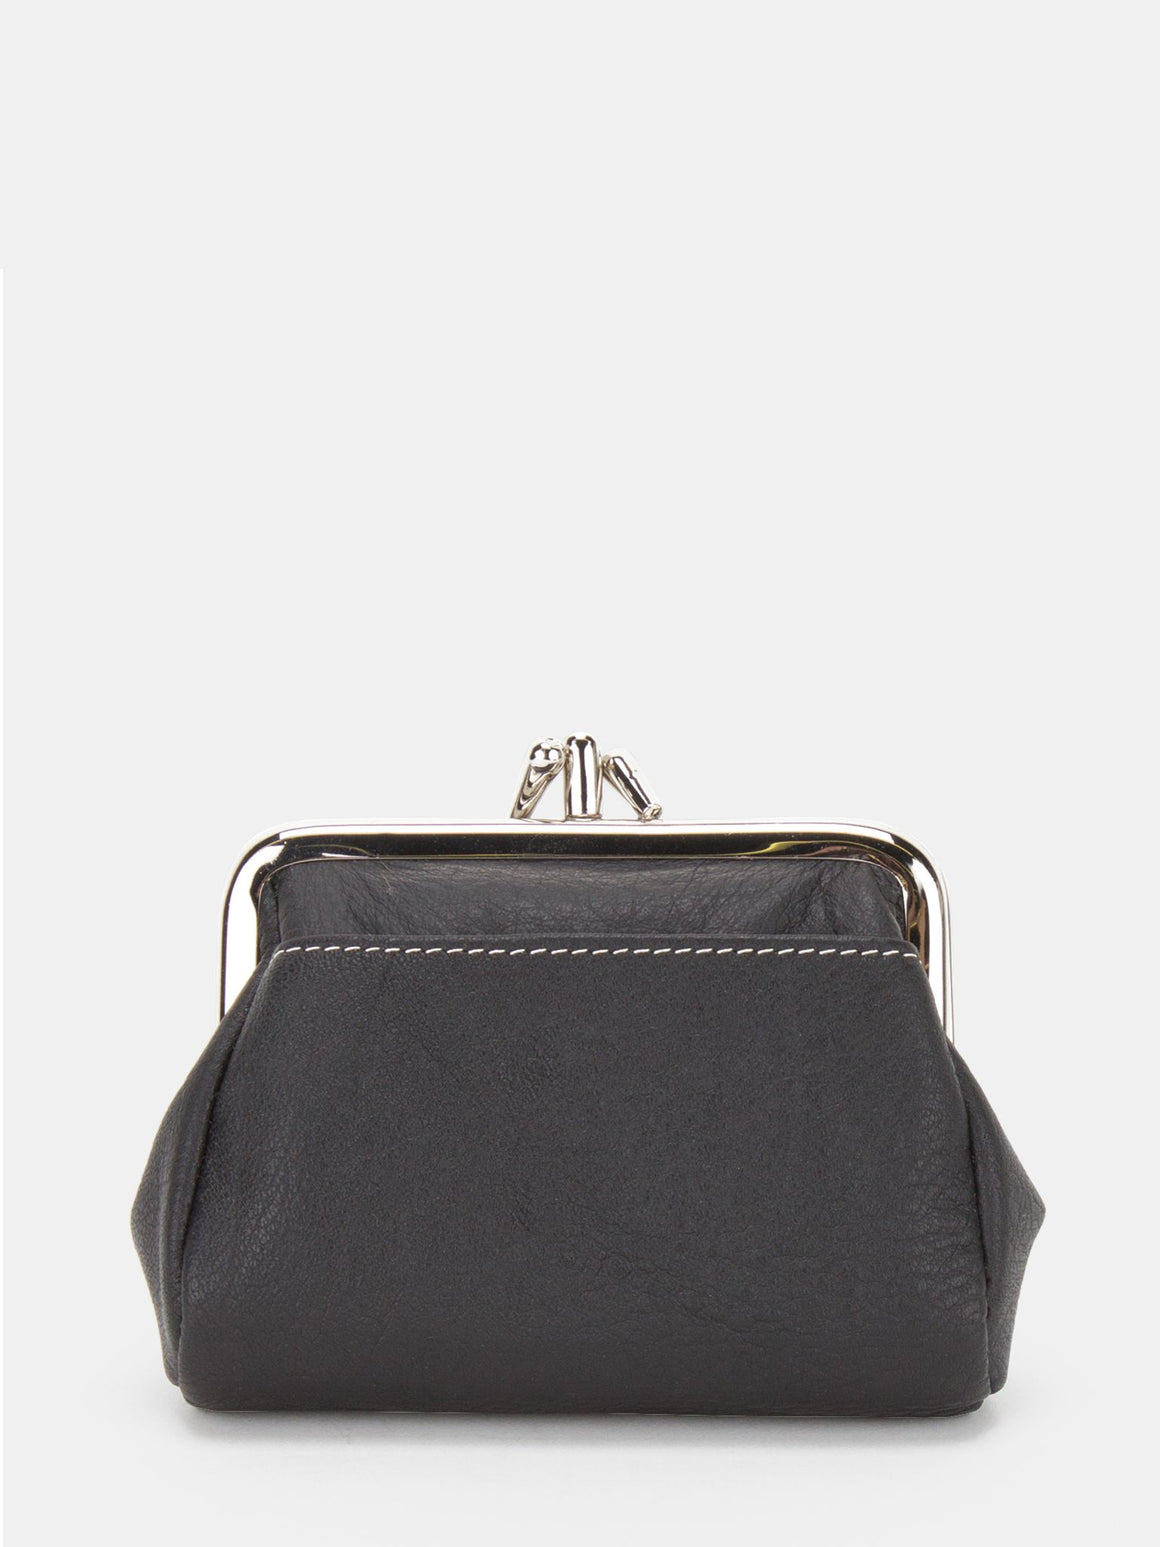 Bluebell Leather Double Frame Clutch - Black